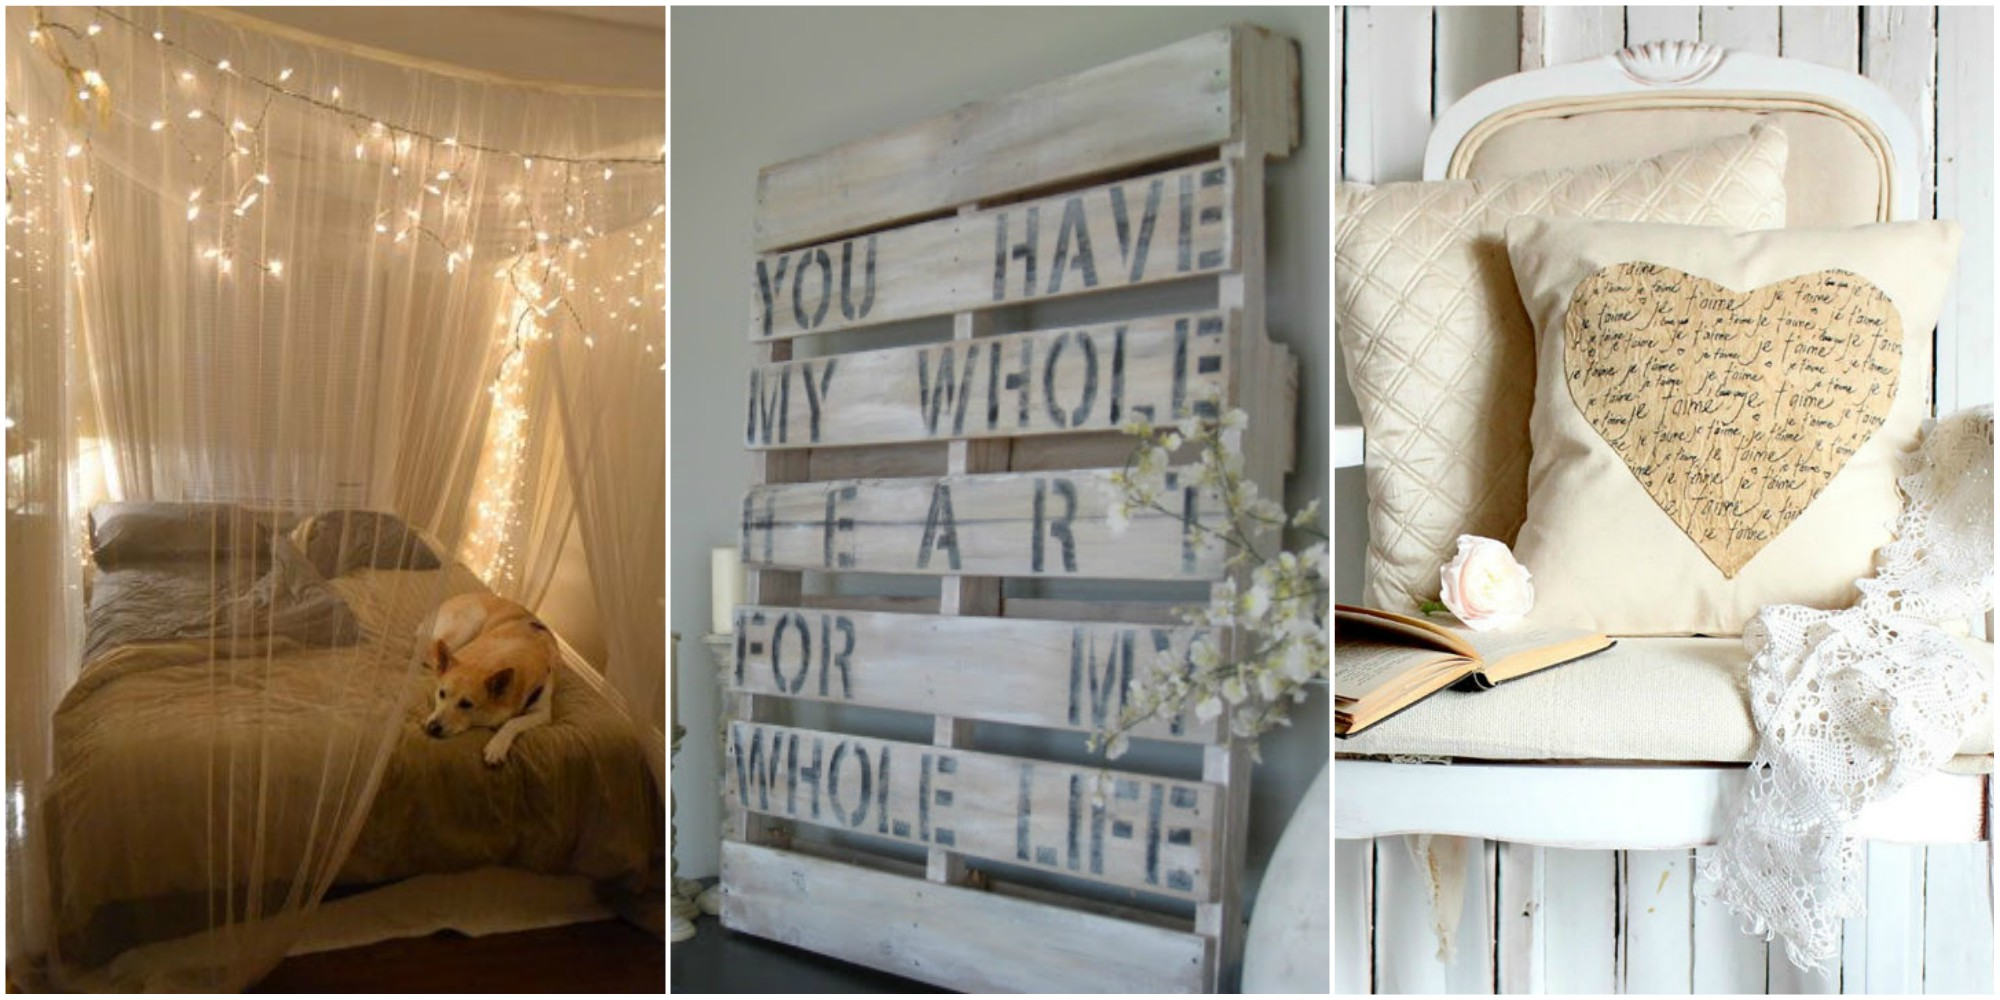 21 diy romantic bedroom decorating ideas country living for Home decorations ideas for free